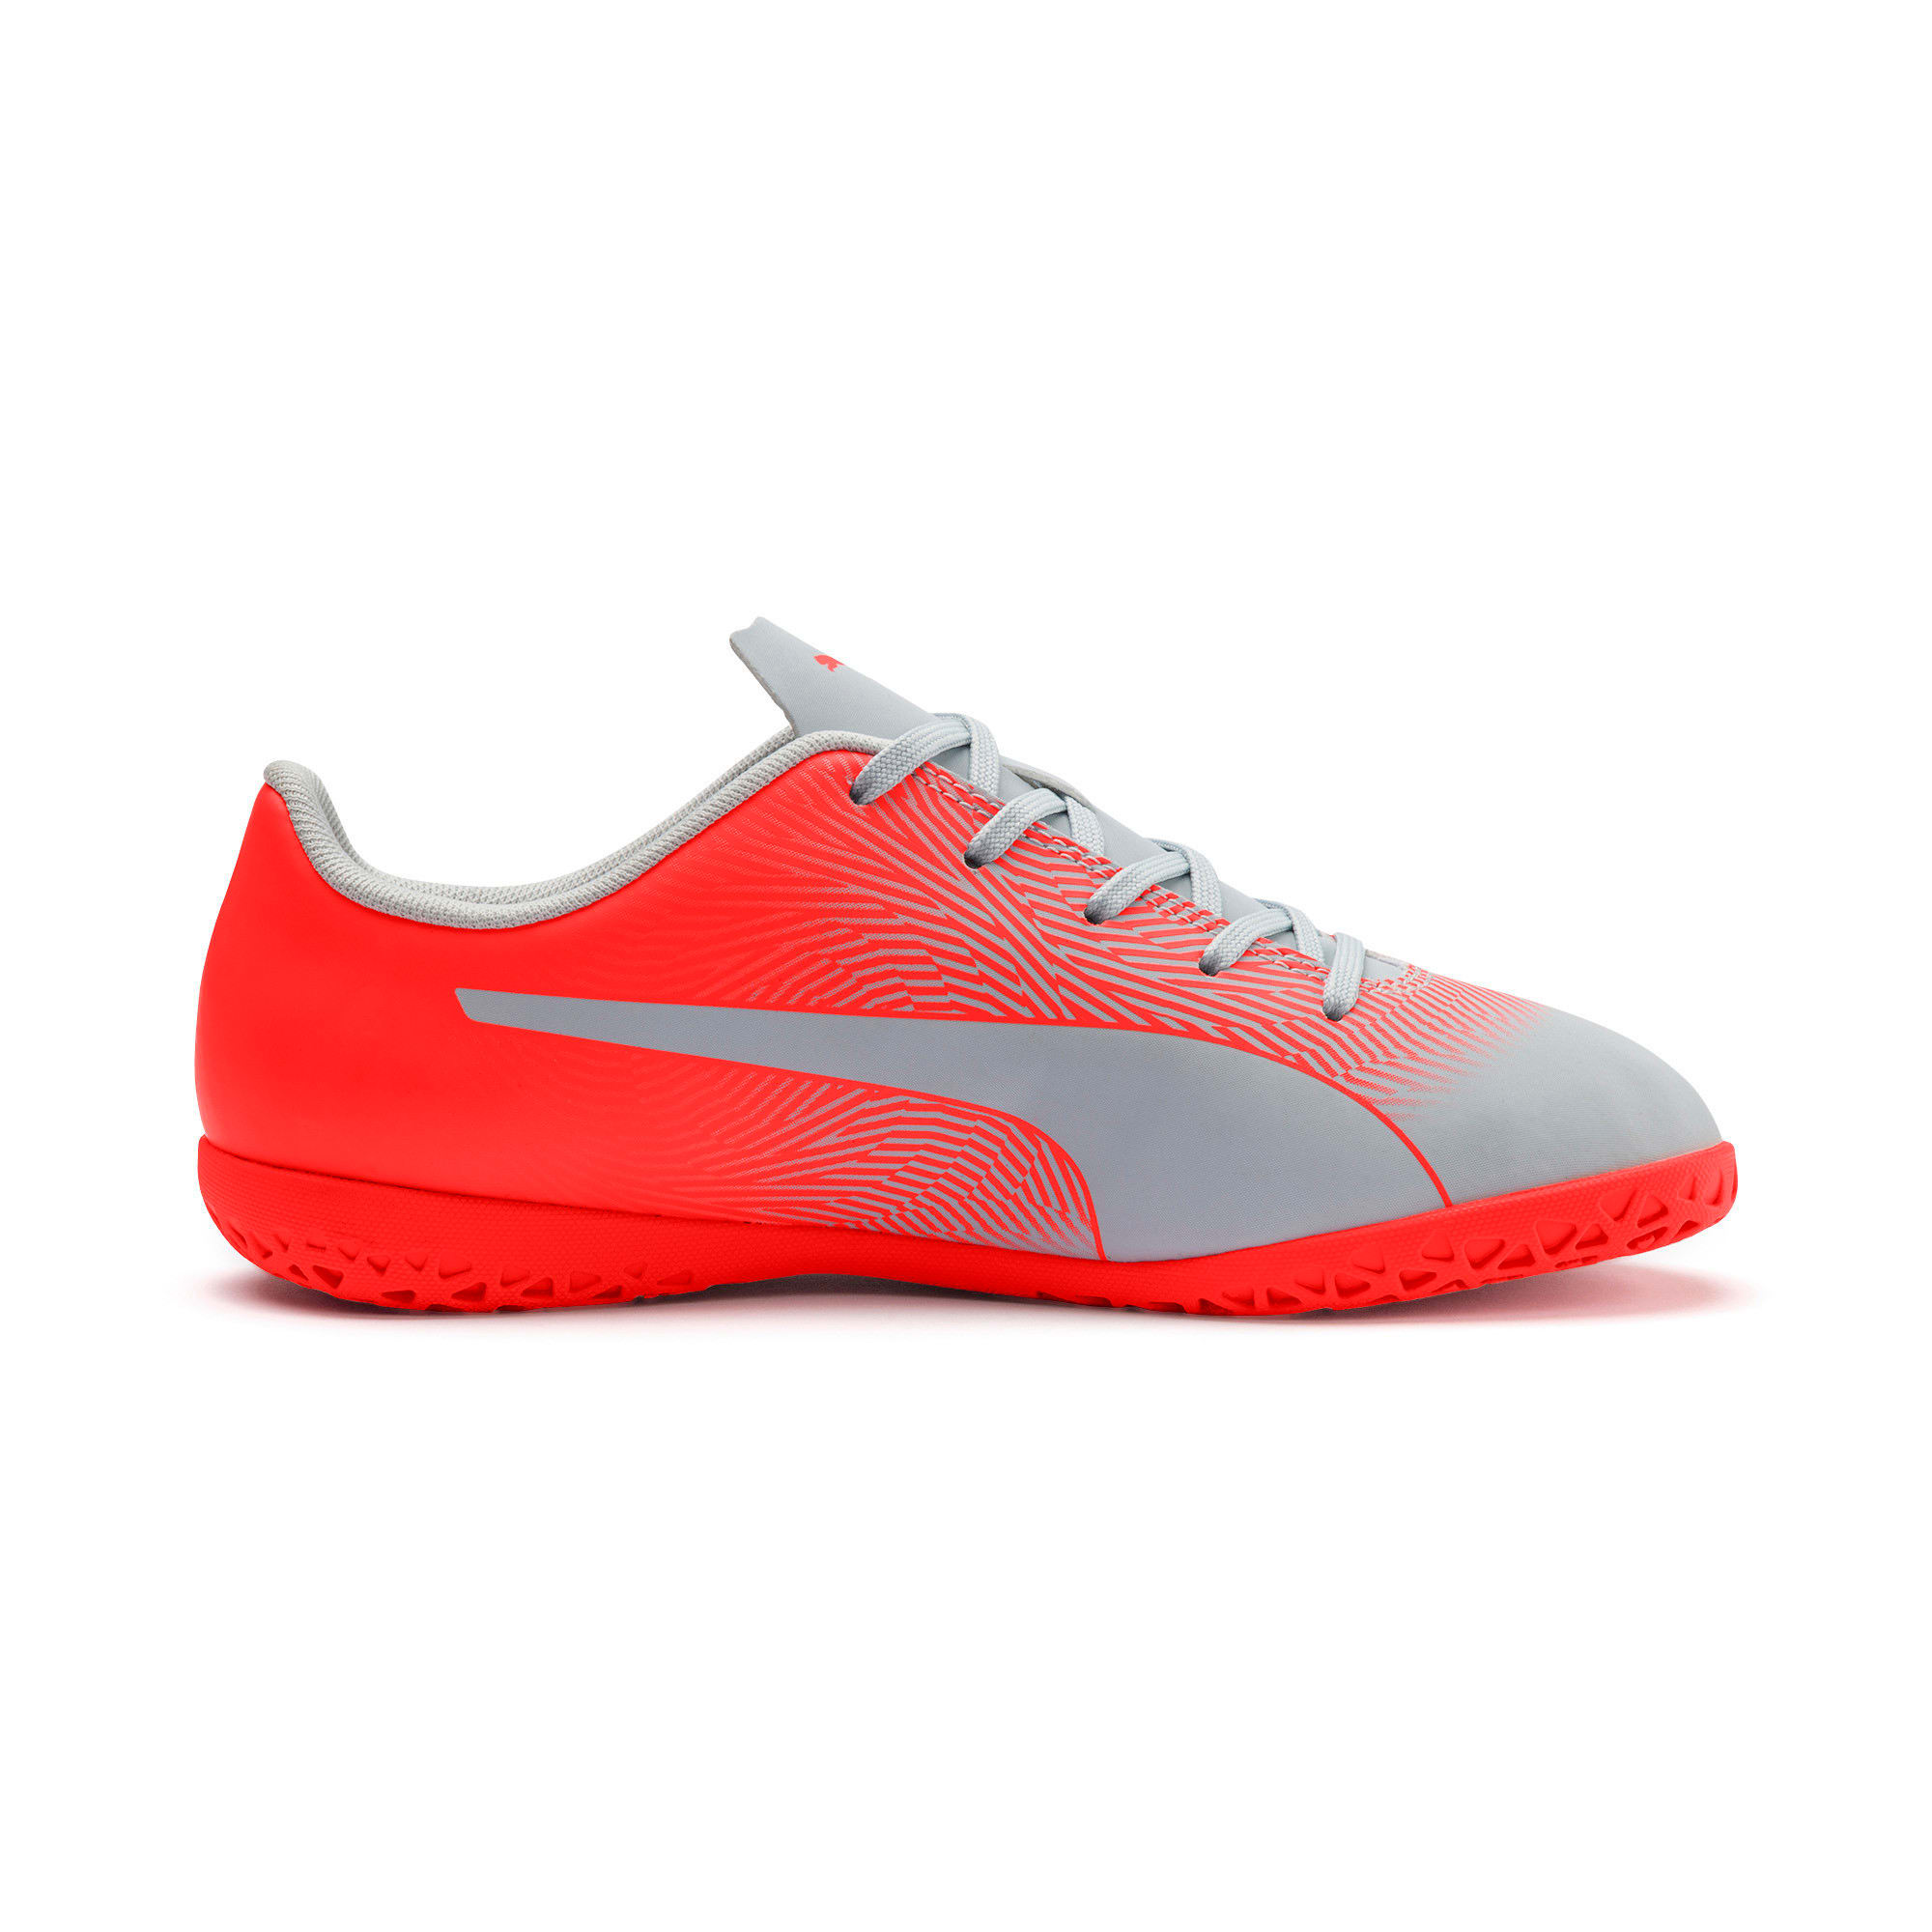 Thumbnail 5 of PUMA Spirit II IT Youth Football Boots, Glacial Blue-Nrgy Red, medium-IND